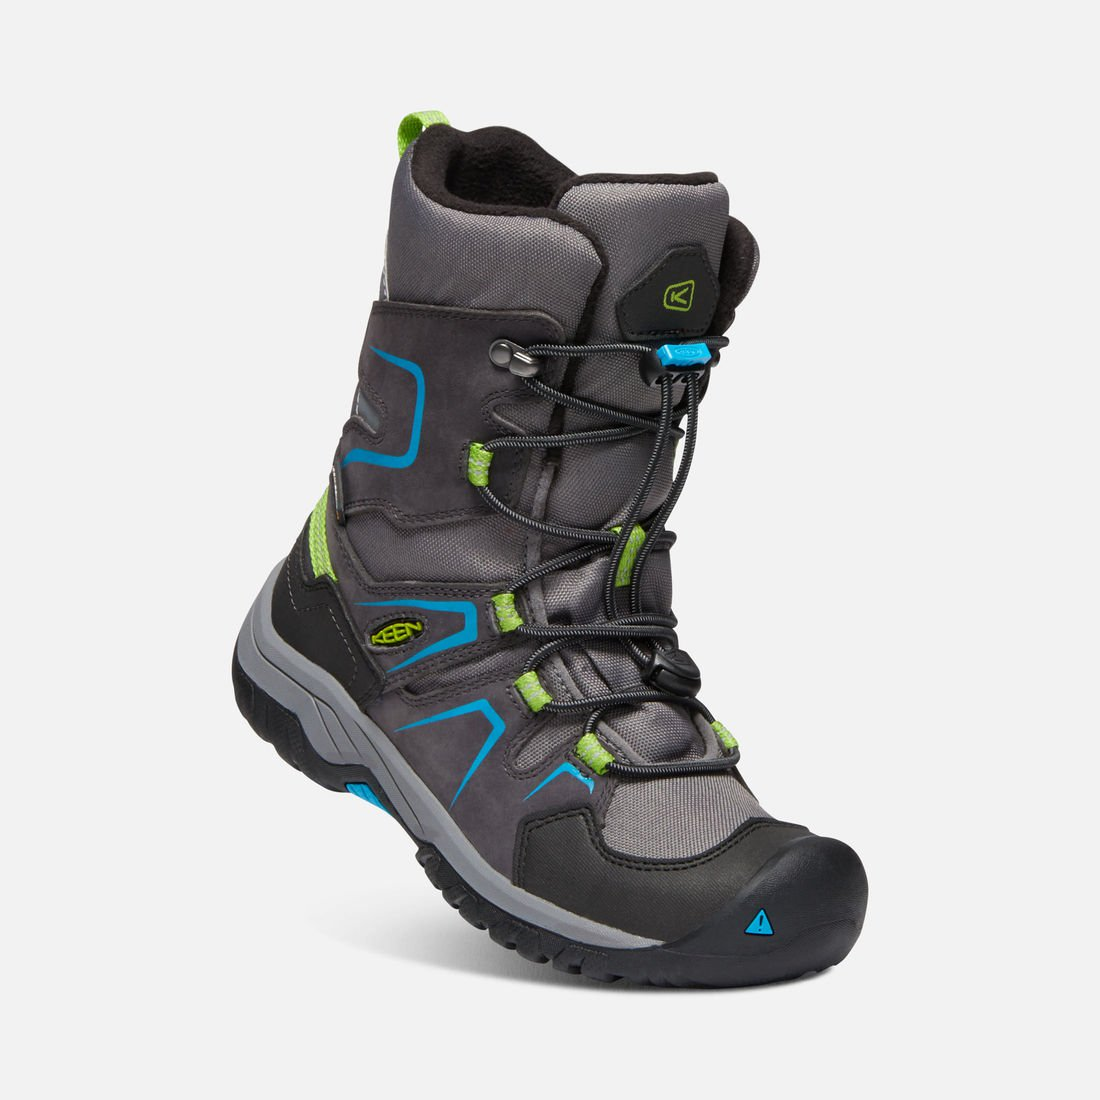 KEEN LEVO WATERPROOF WINTER BOOT šedé vel.32/33